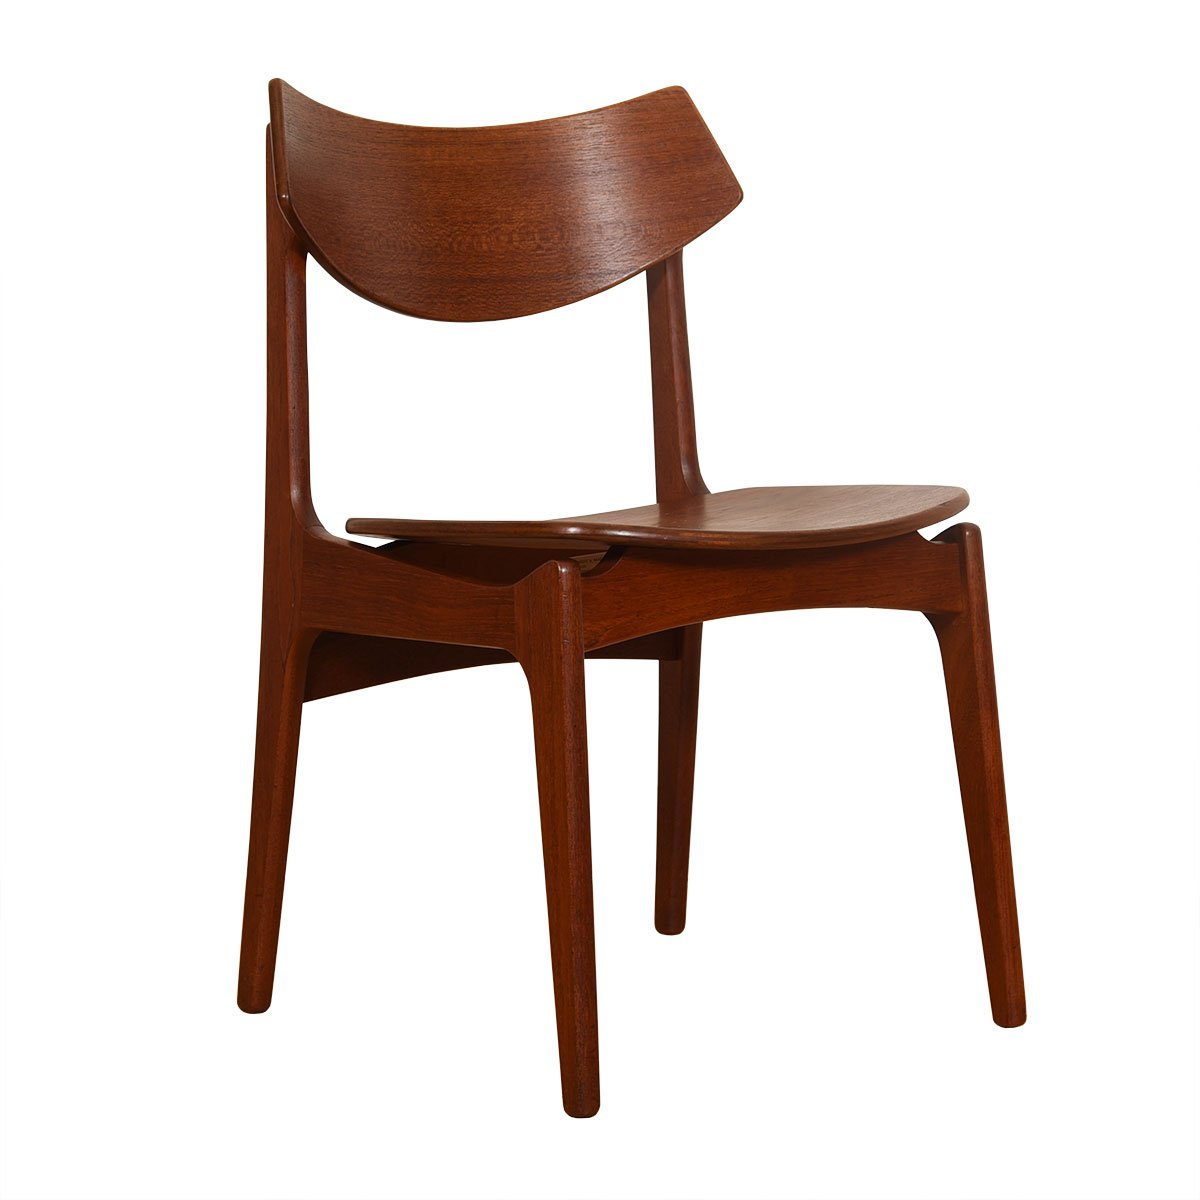 Set of 4 Danish Teak Curved Back Dining Chairs.